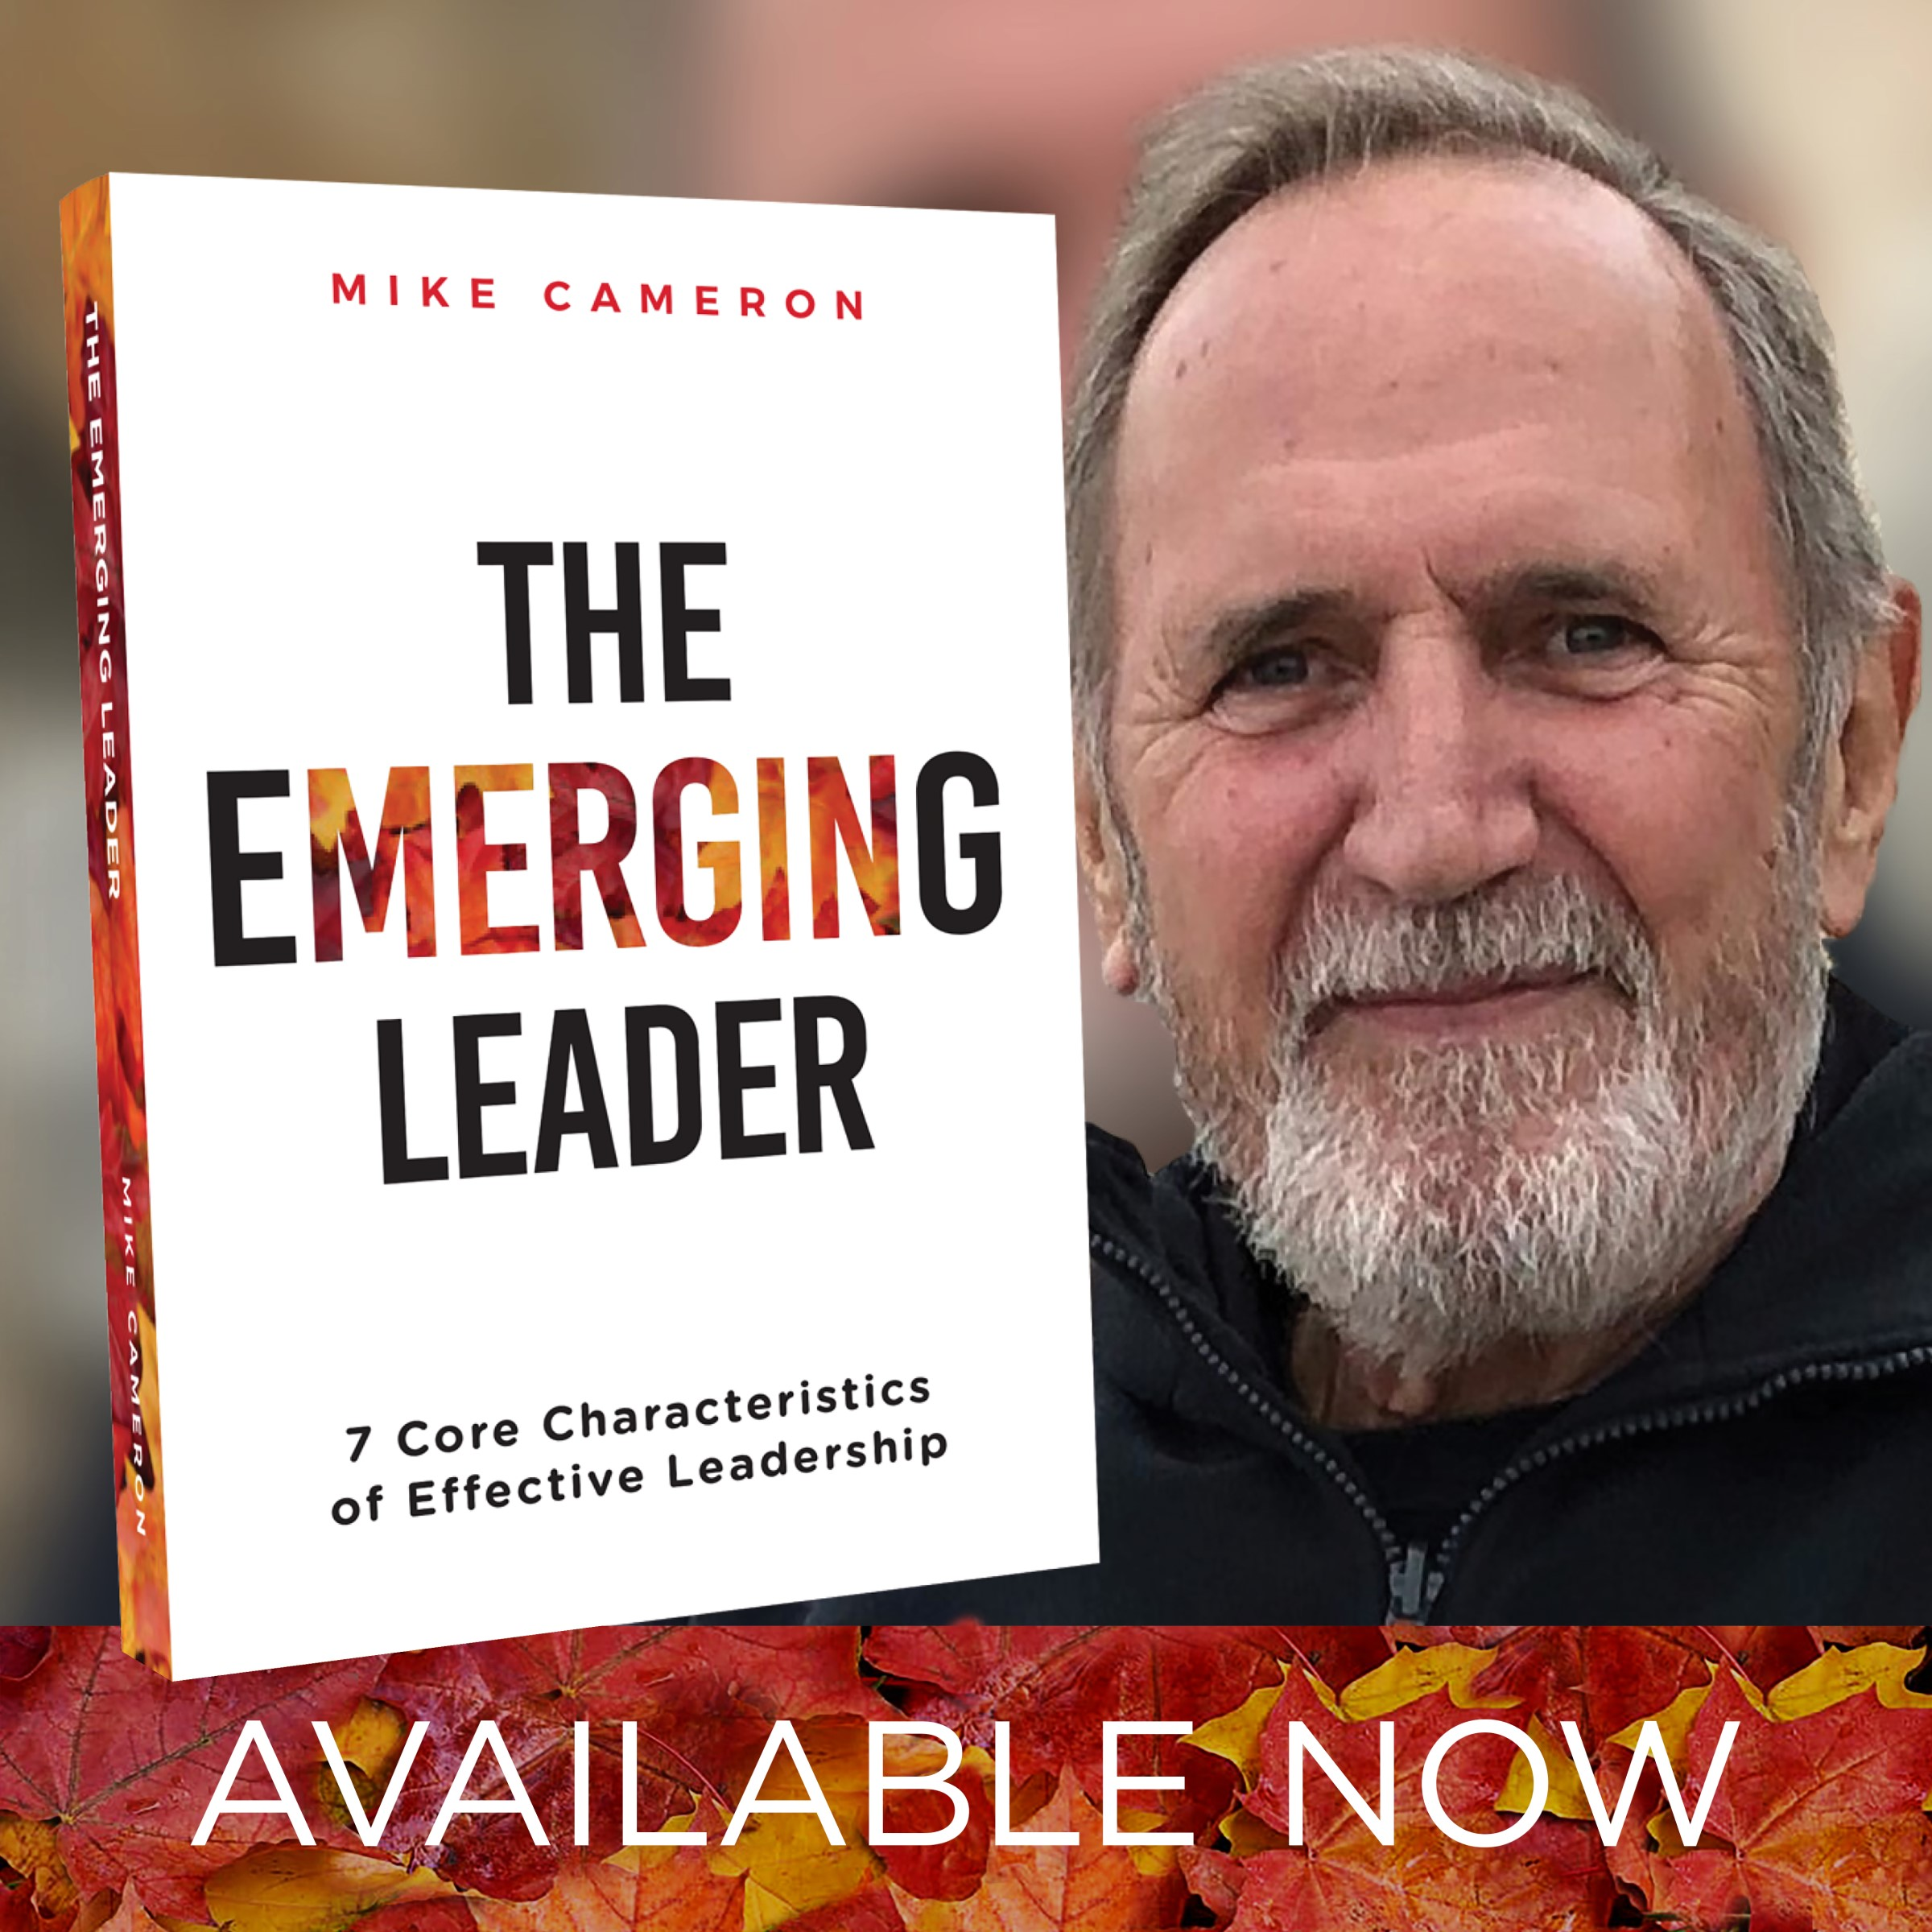 The Emerging Leader book by Mike Cameron